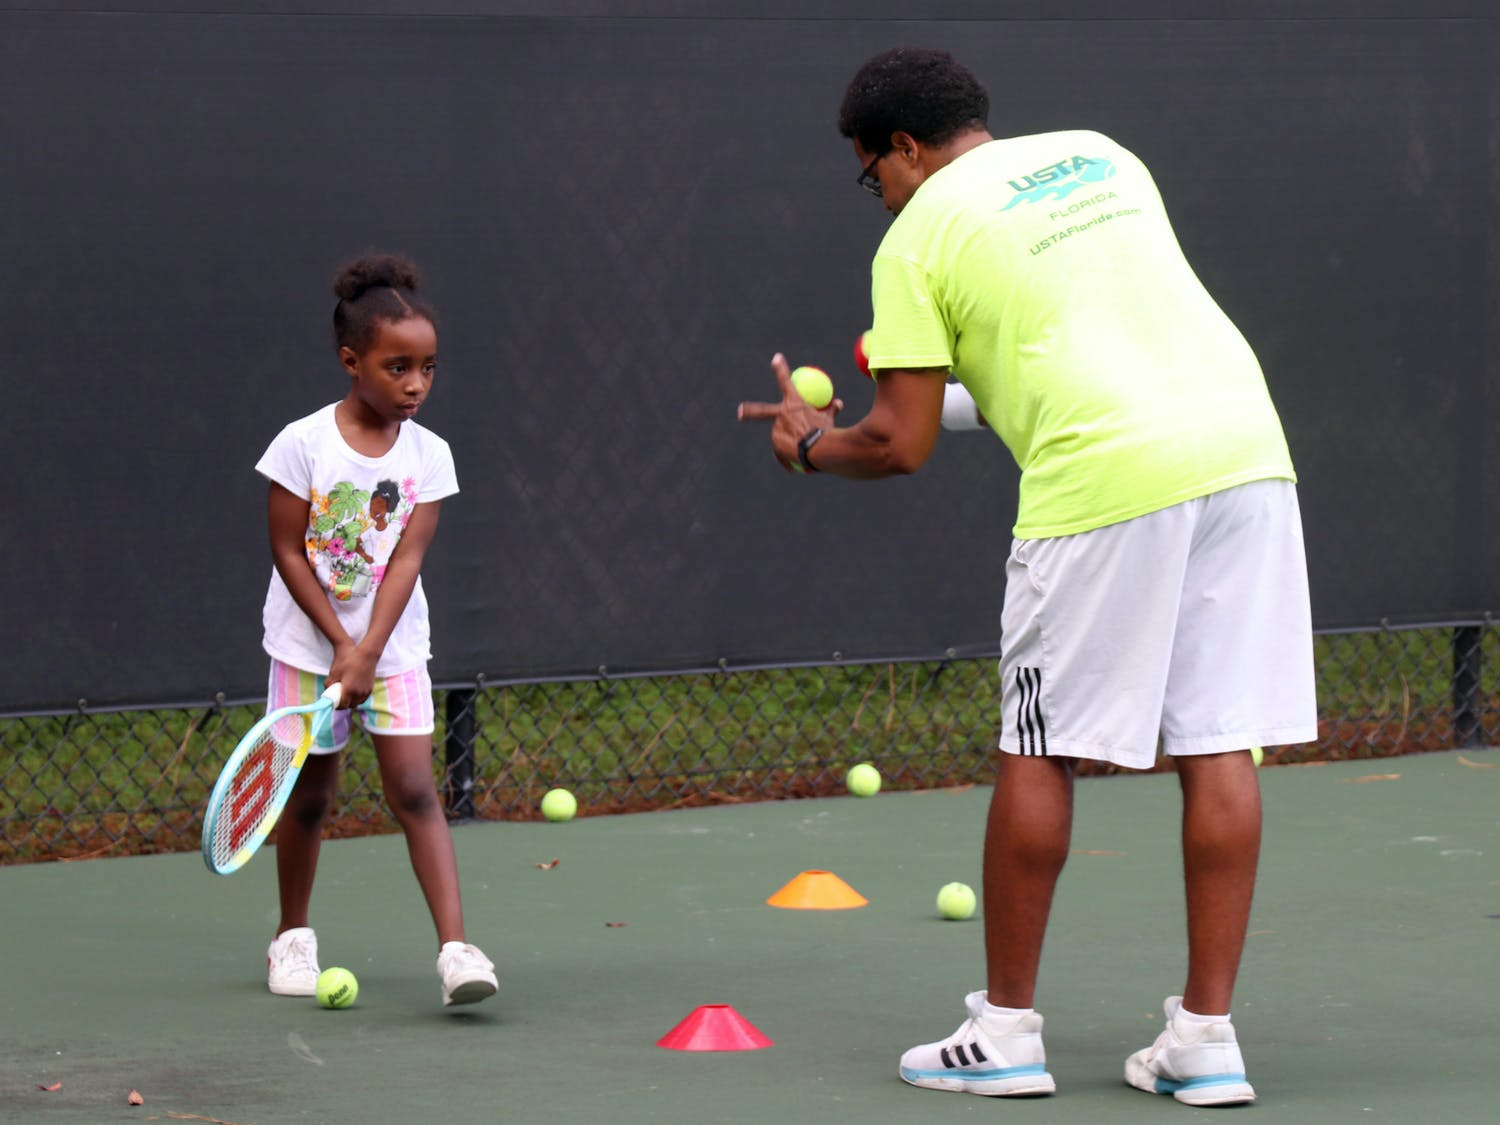 Lainey Norton (left), 6, attends a tennis lesson led by Christopher Scott Champion (right), 35, during the program at T.B. McPherson Park on Thursday, Sept. 23, 2021. The pilot program offers discounted lessons for East Gainesville residents.